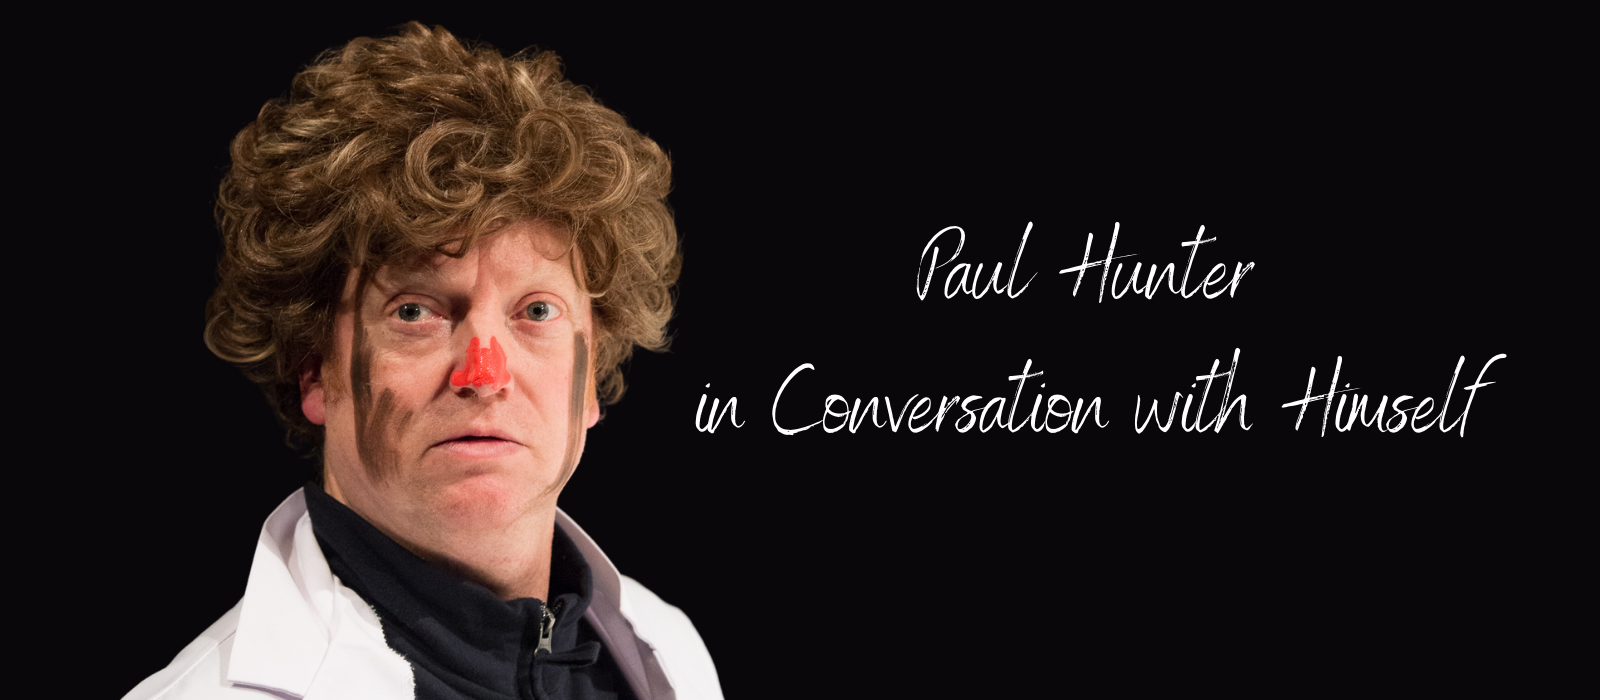 Paul Hunter: In Conversation With Himself